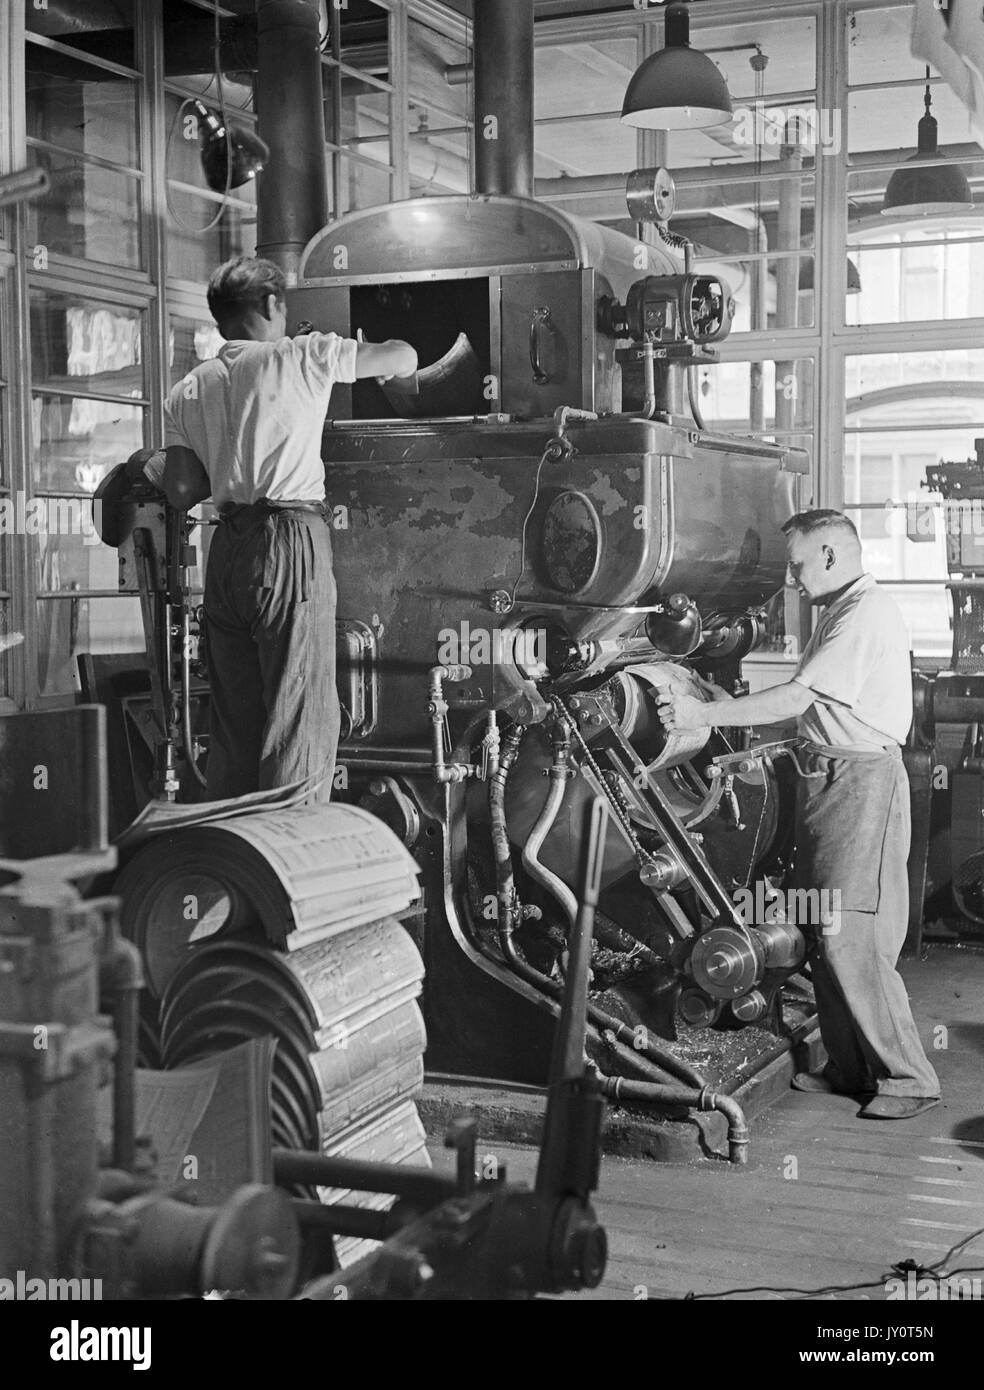 Young Men Working With Old Fashioned Printing Press